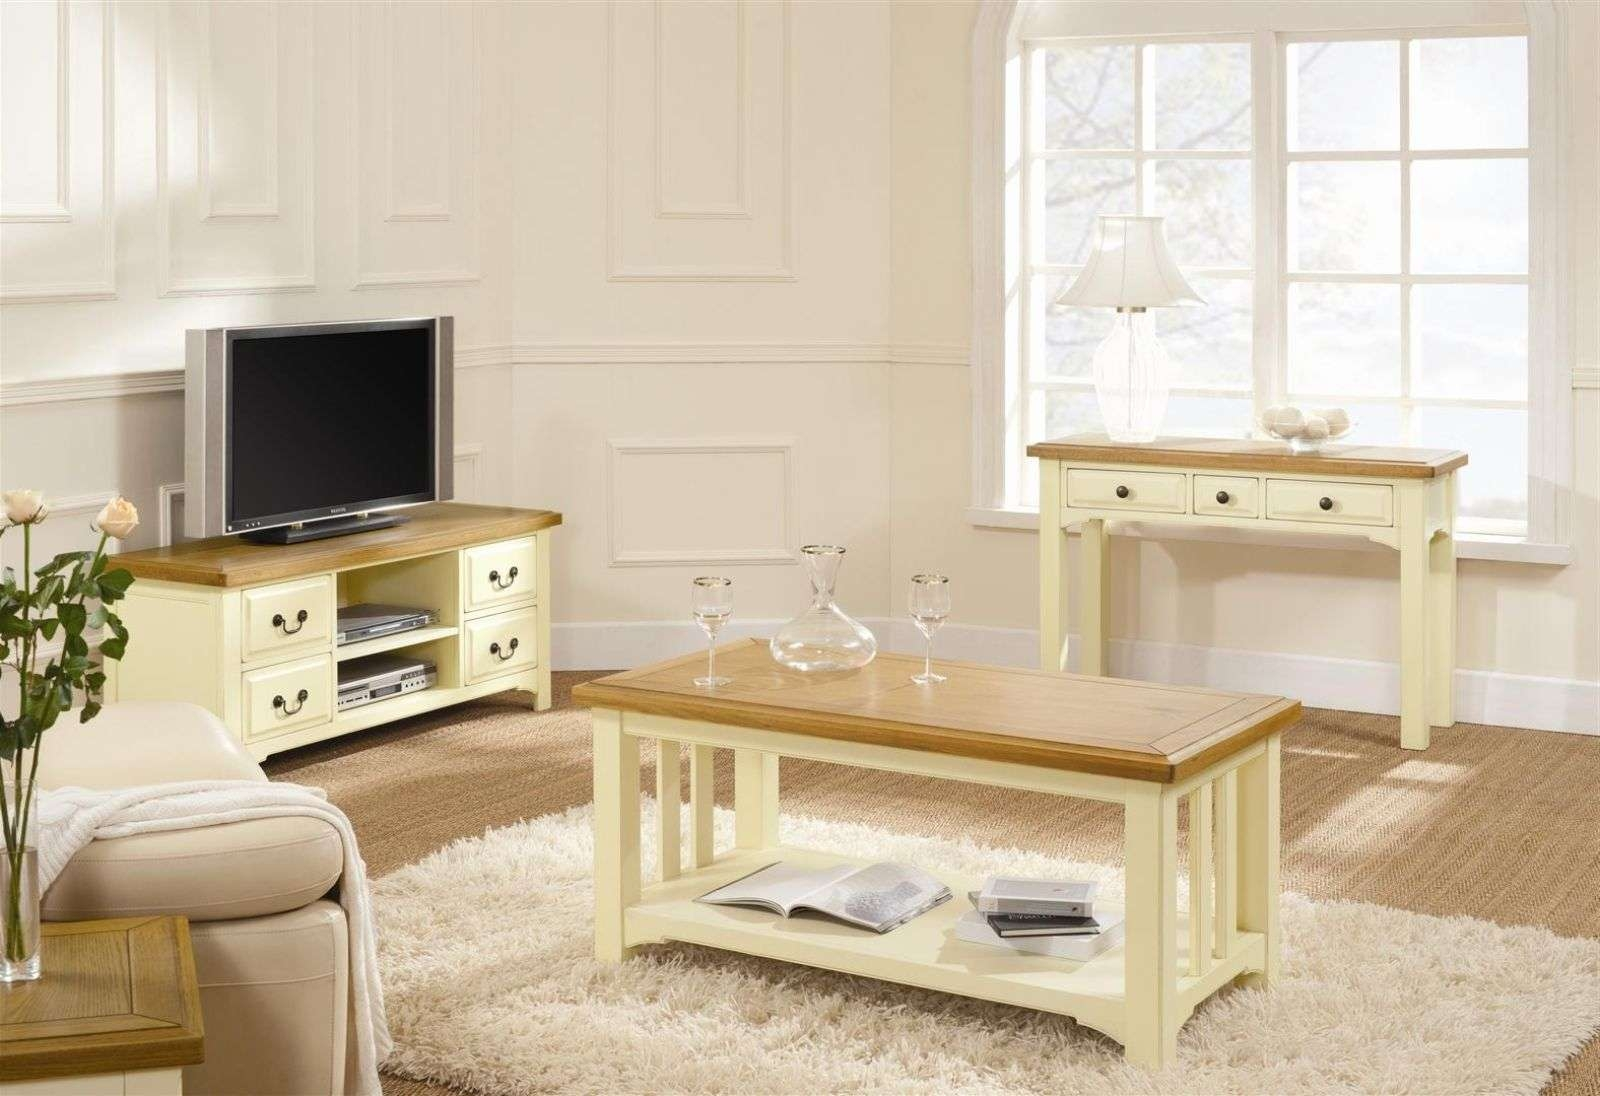 Sandringham Oak & Cream Coffee Table Cream Coffee Table With Glass Pertaining To Latest Cream And Oak Coffee Tables (View 14 of 20)